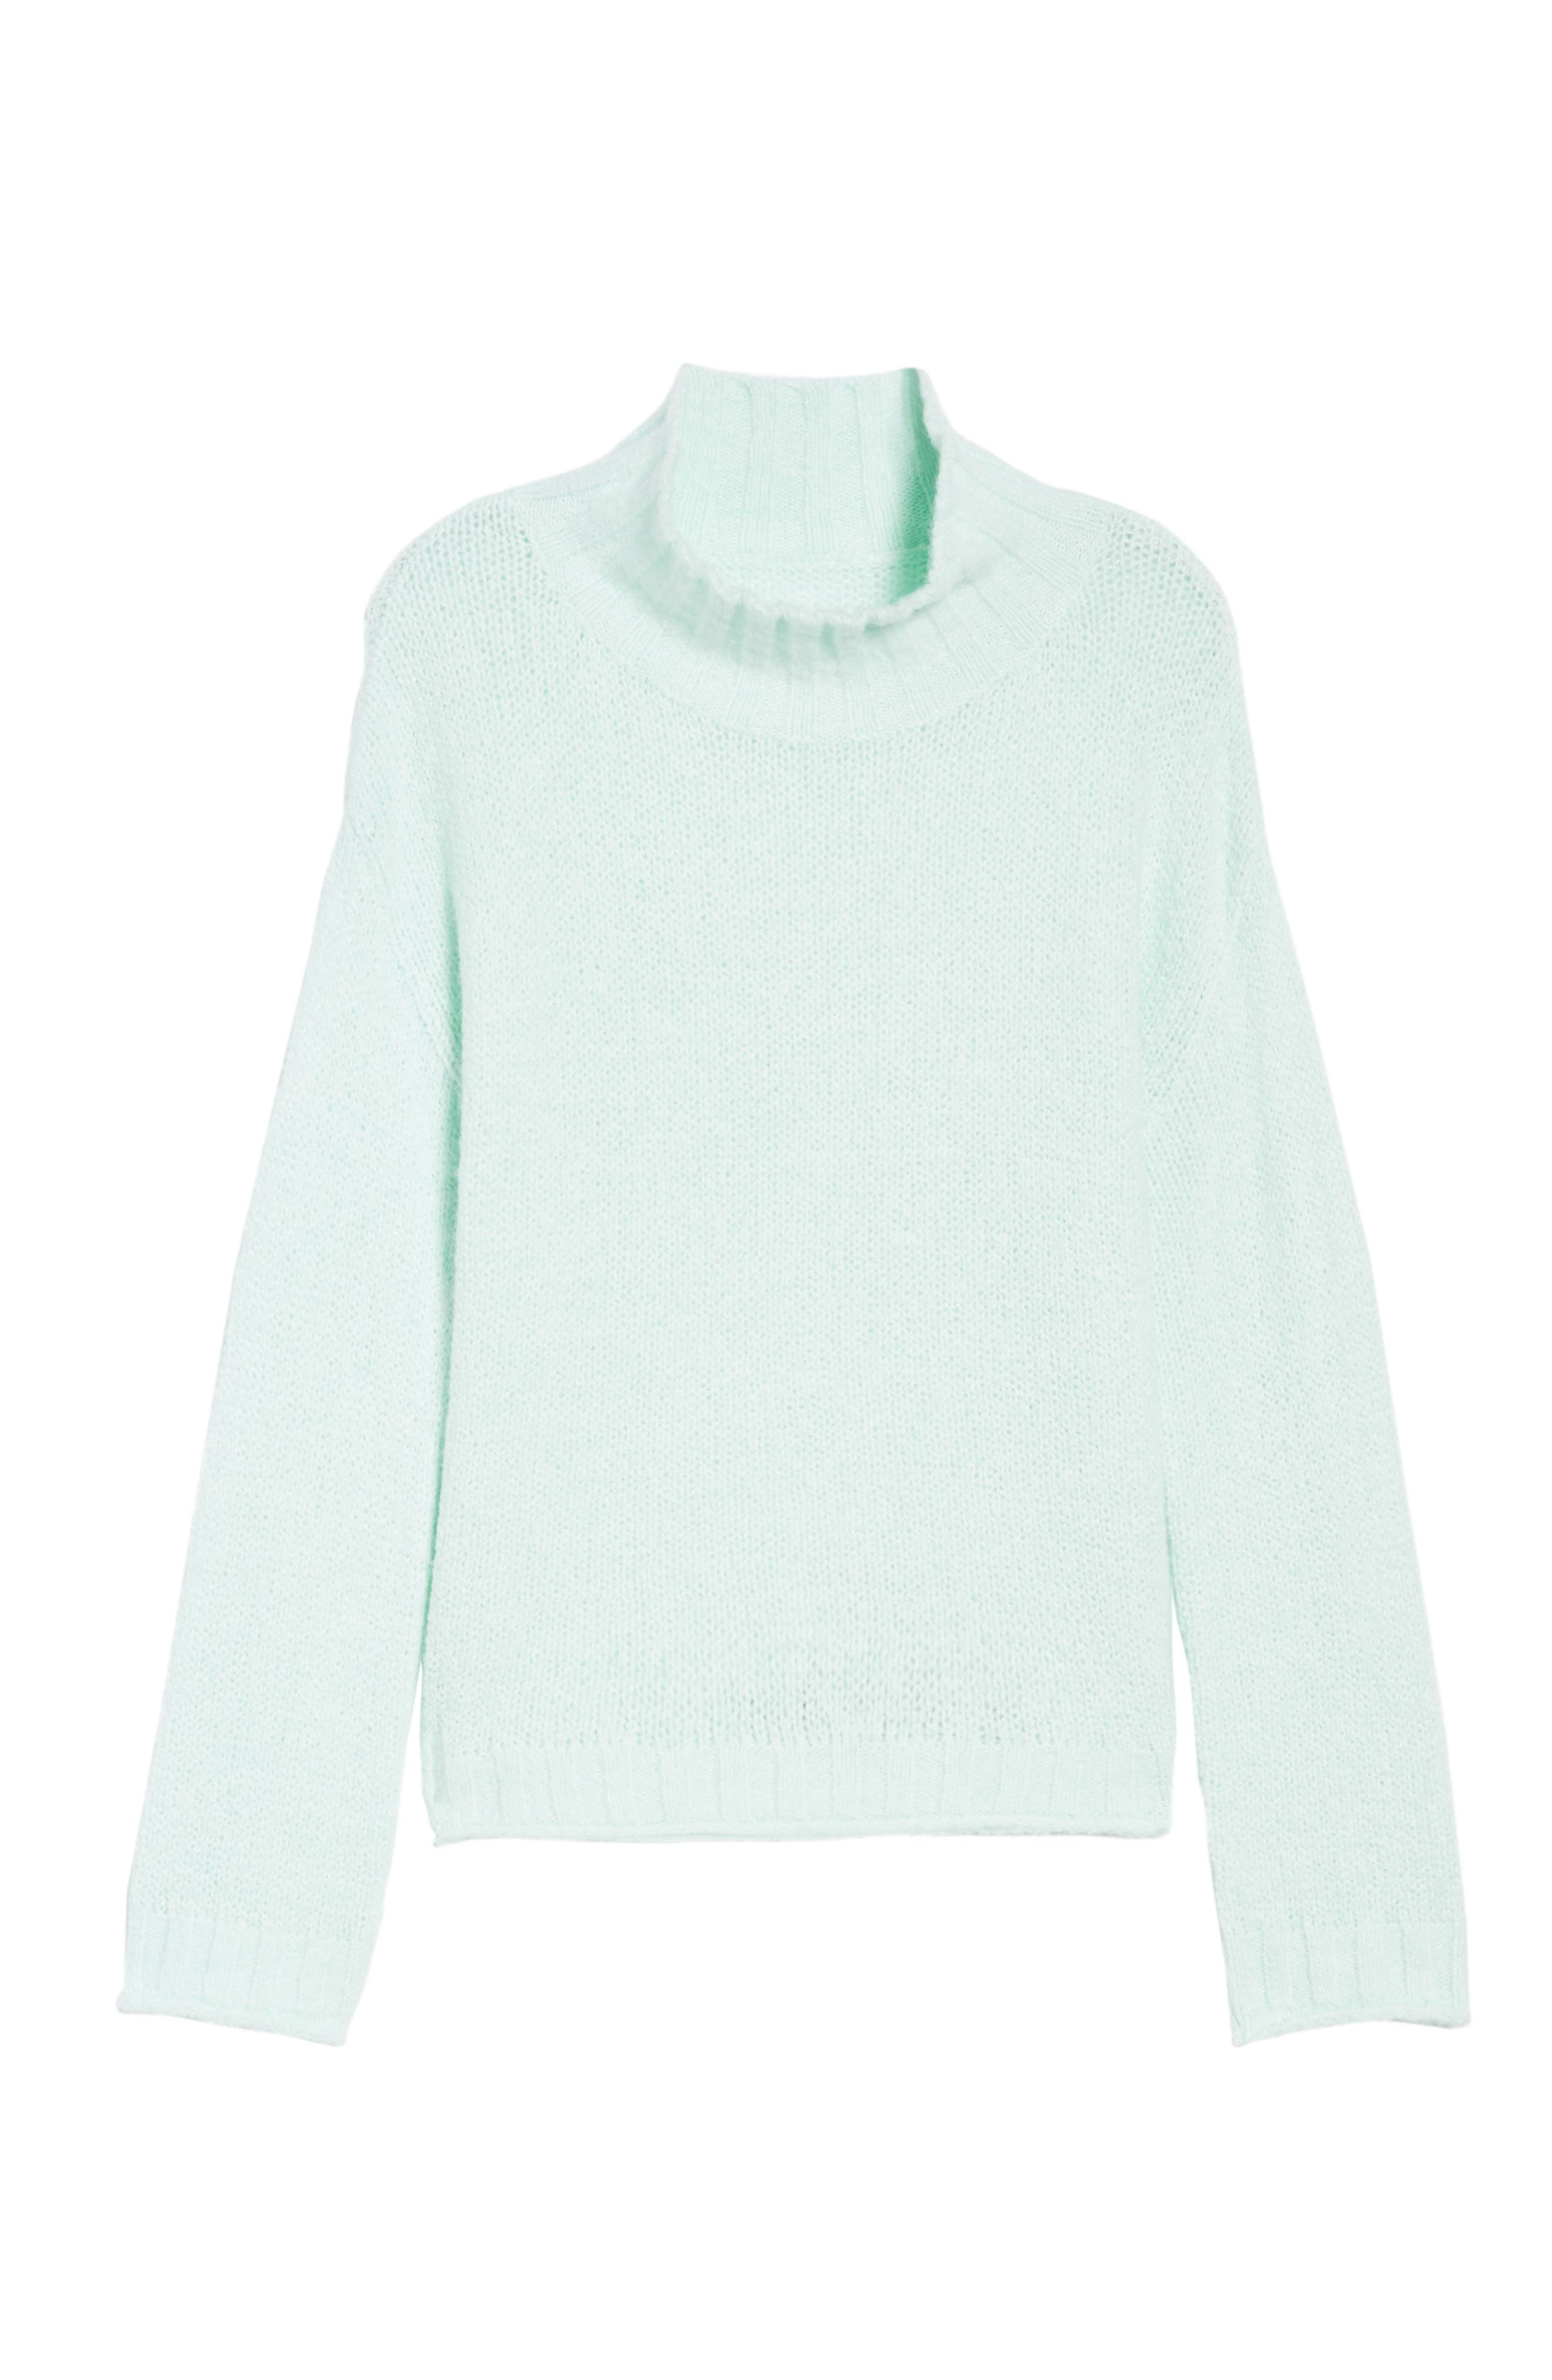 Cozy Mock Neck Sweater,                             Alternate thumbnail 6, color,                             330